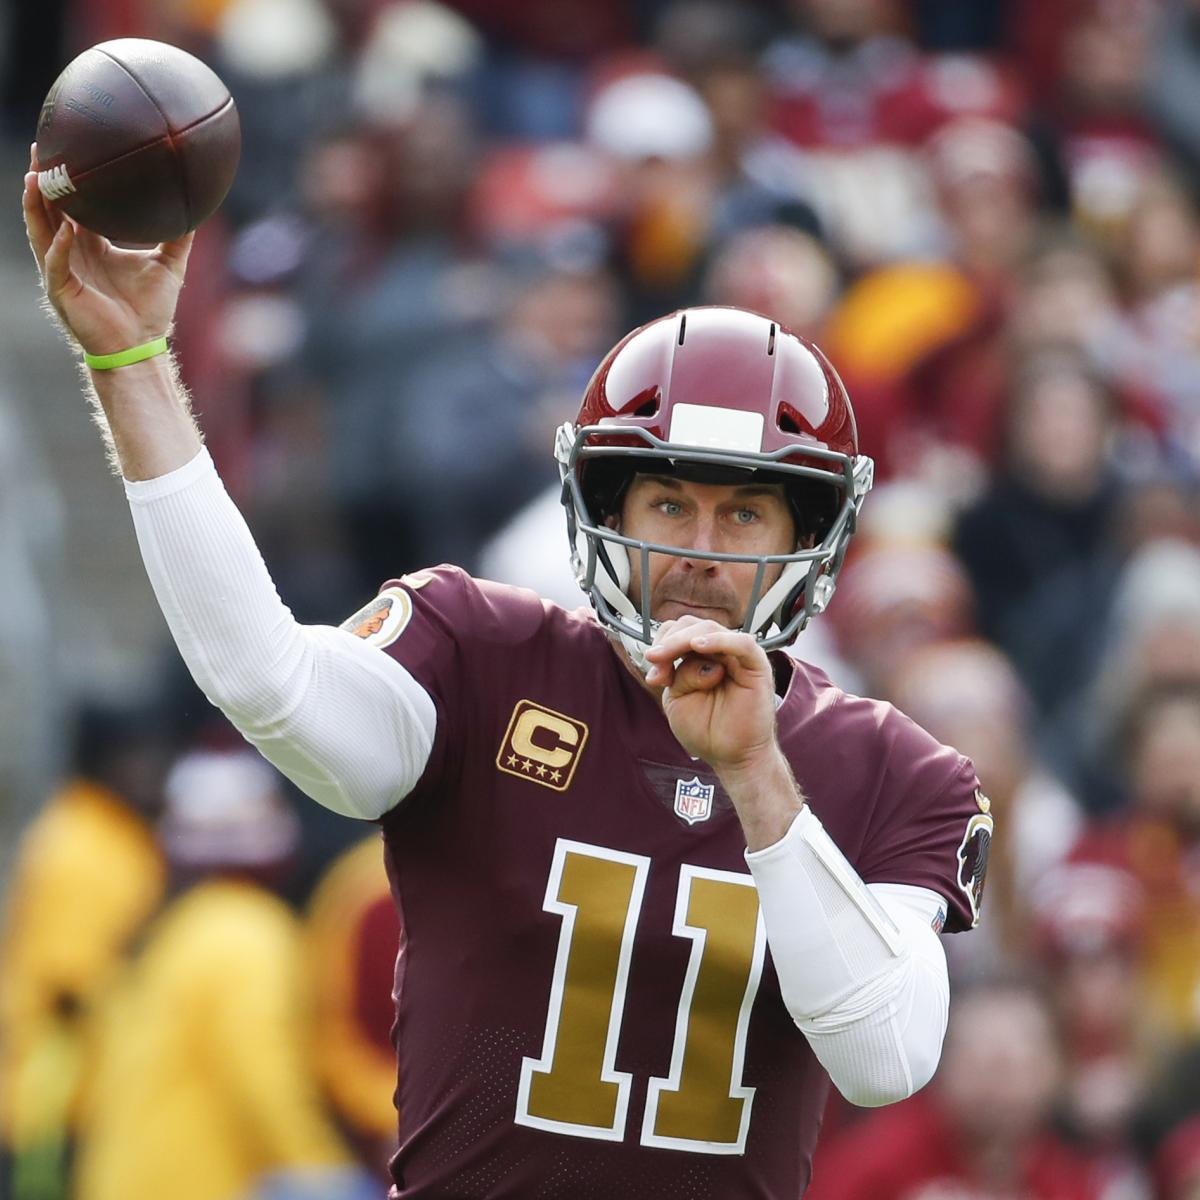 Washington QB Alex Smith Cleared to Return Two Years After